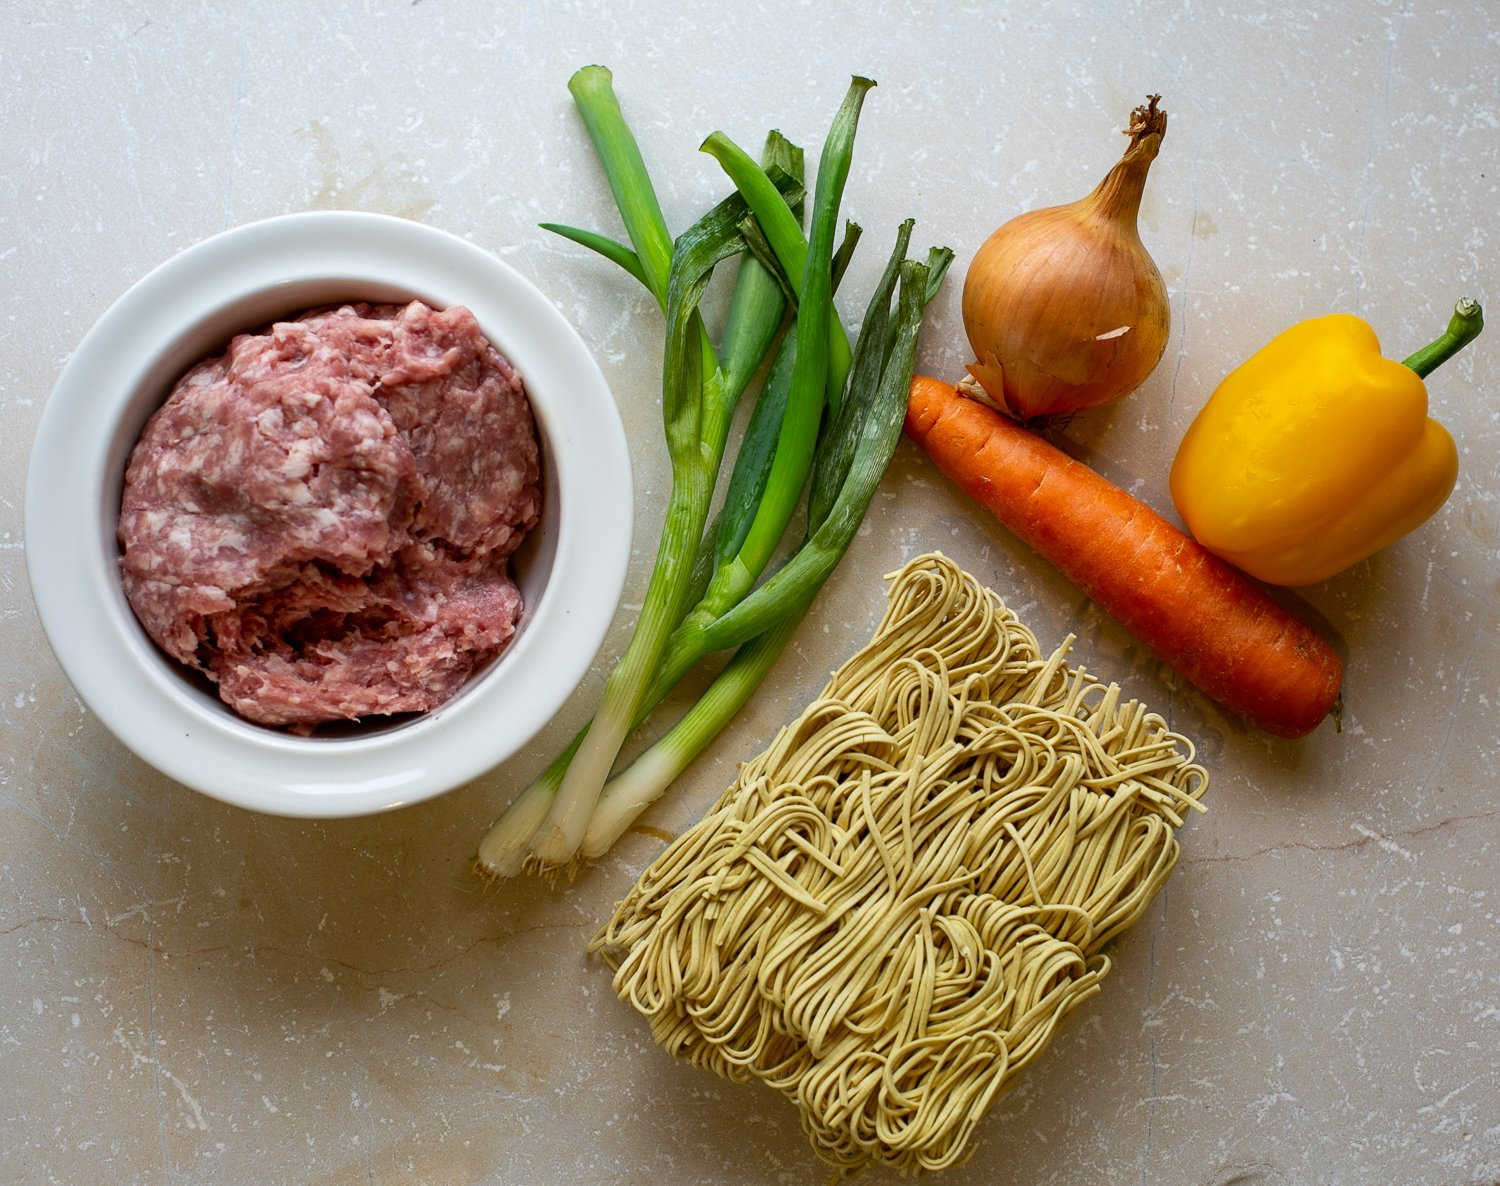 ingredients for Chilli Pork Noodles with Peanut Sauce